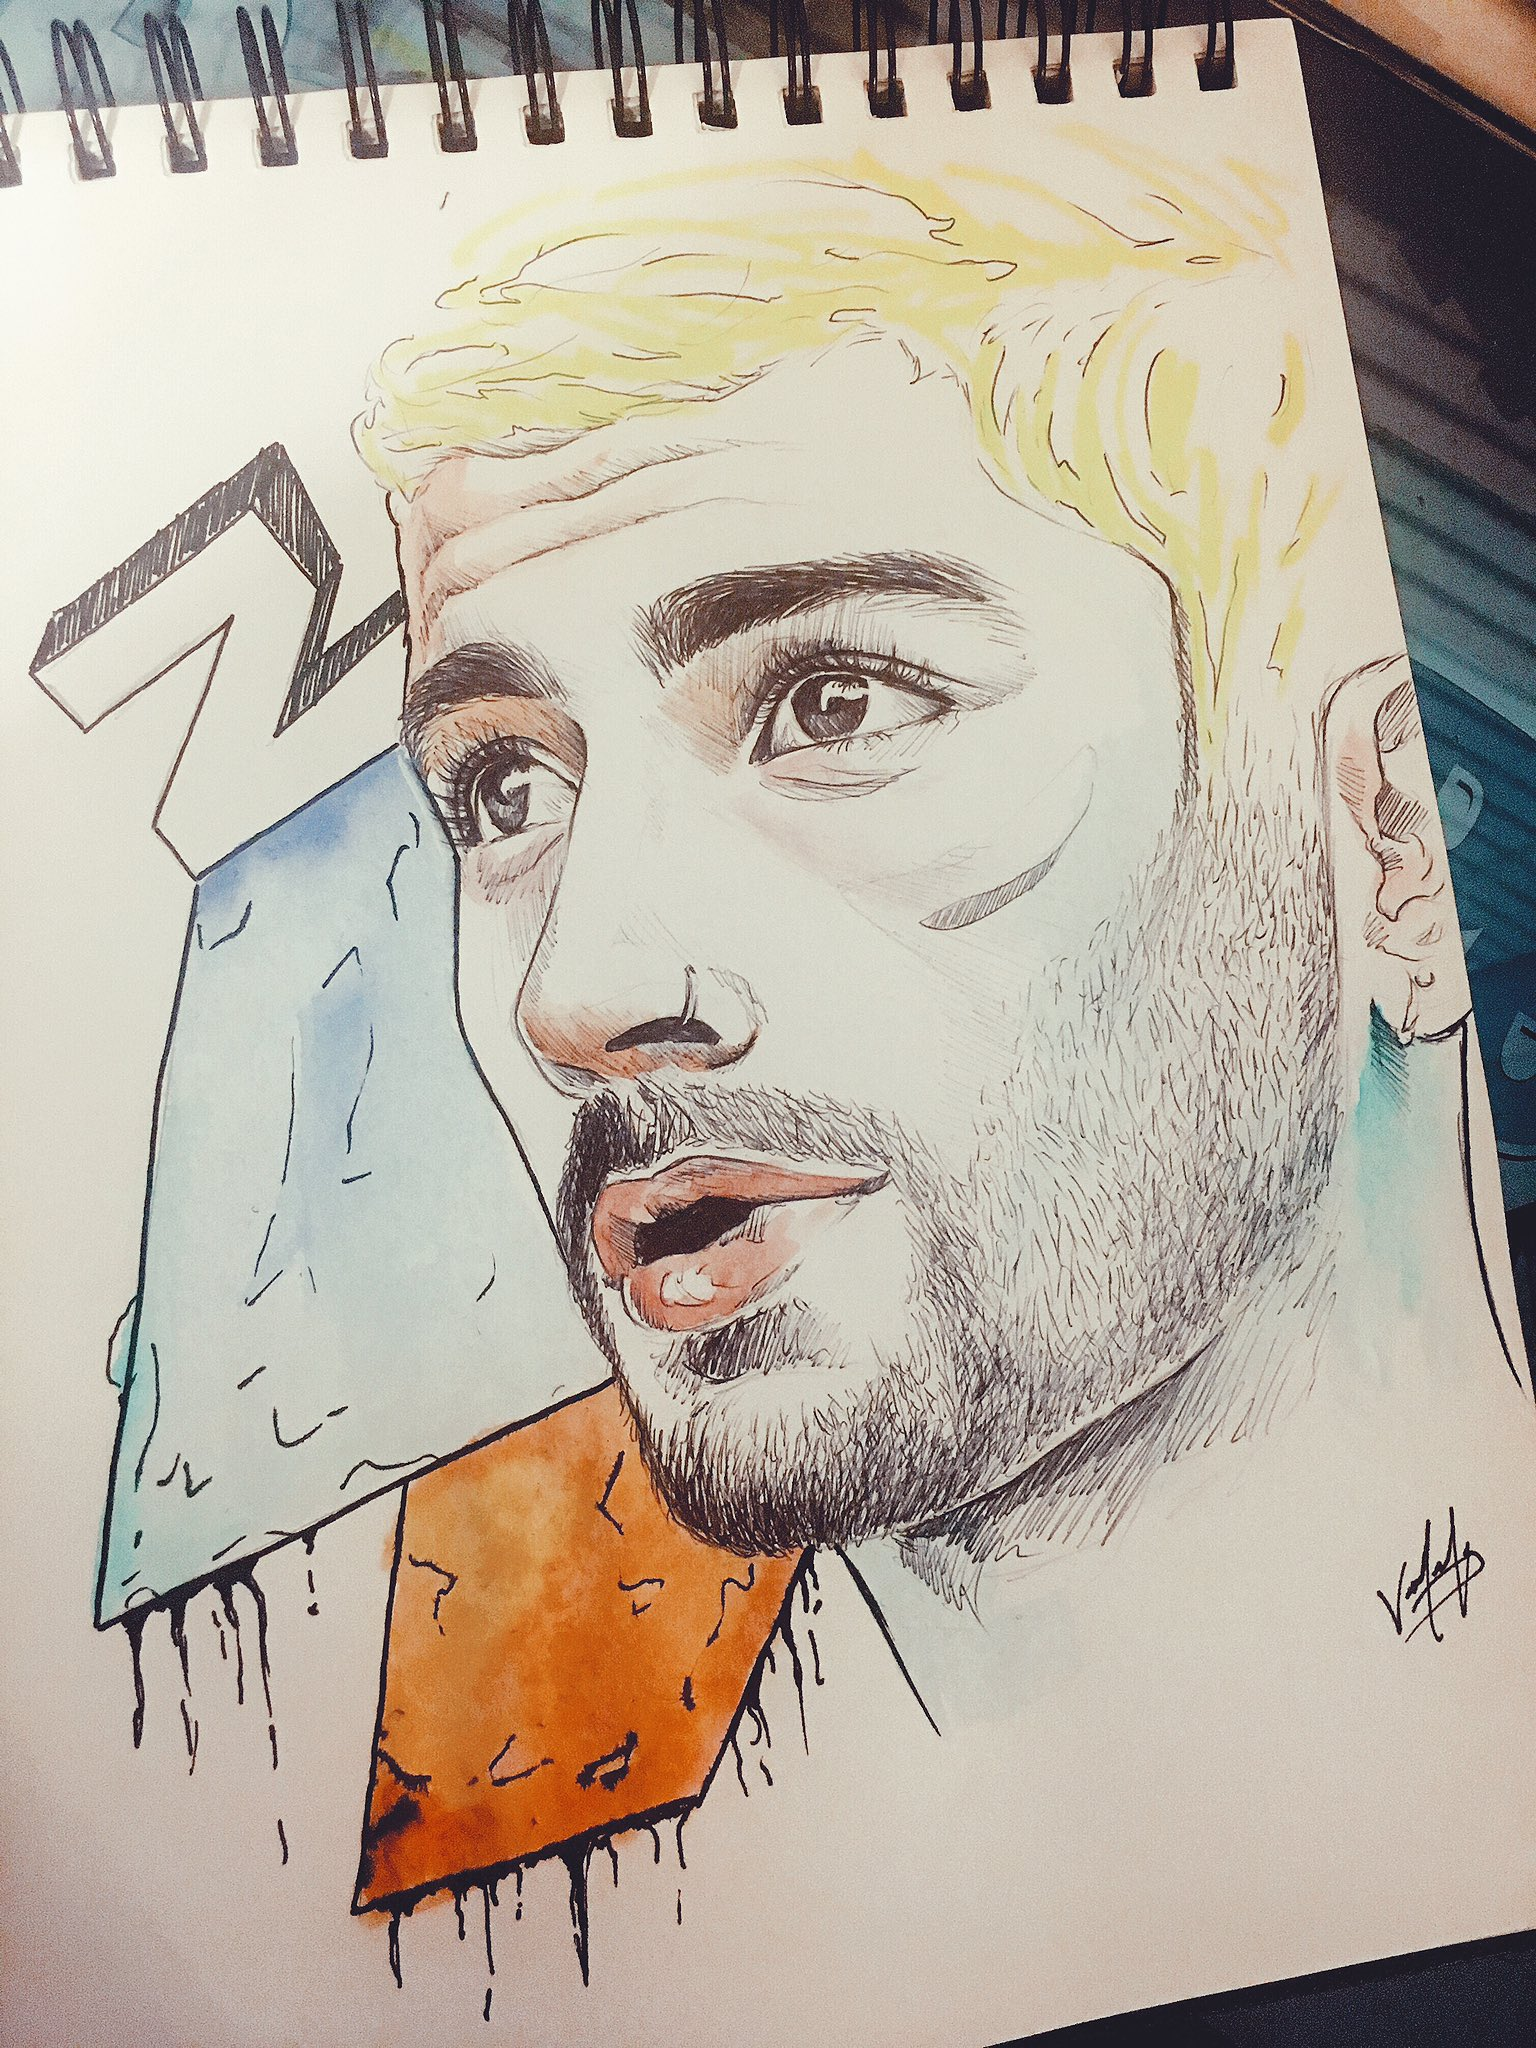 .@zaynmalik ill be with you from #DuskTillDawn ���� https://t.co/Prn7PXj44X